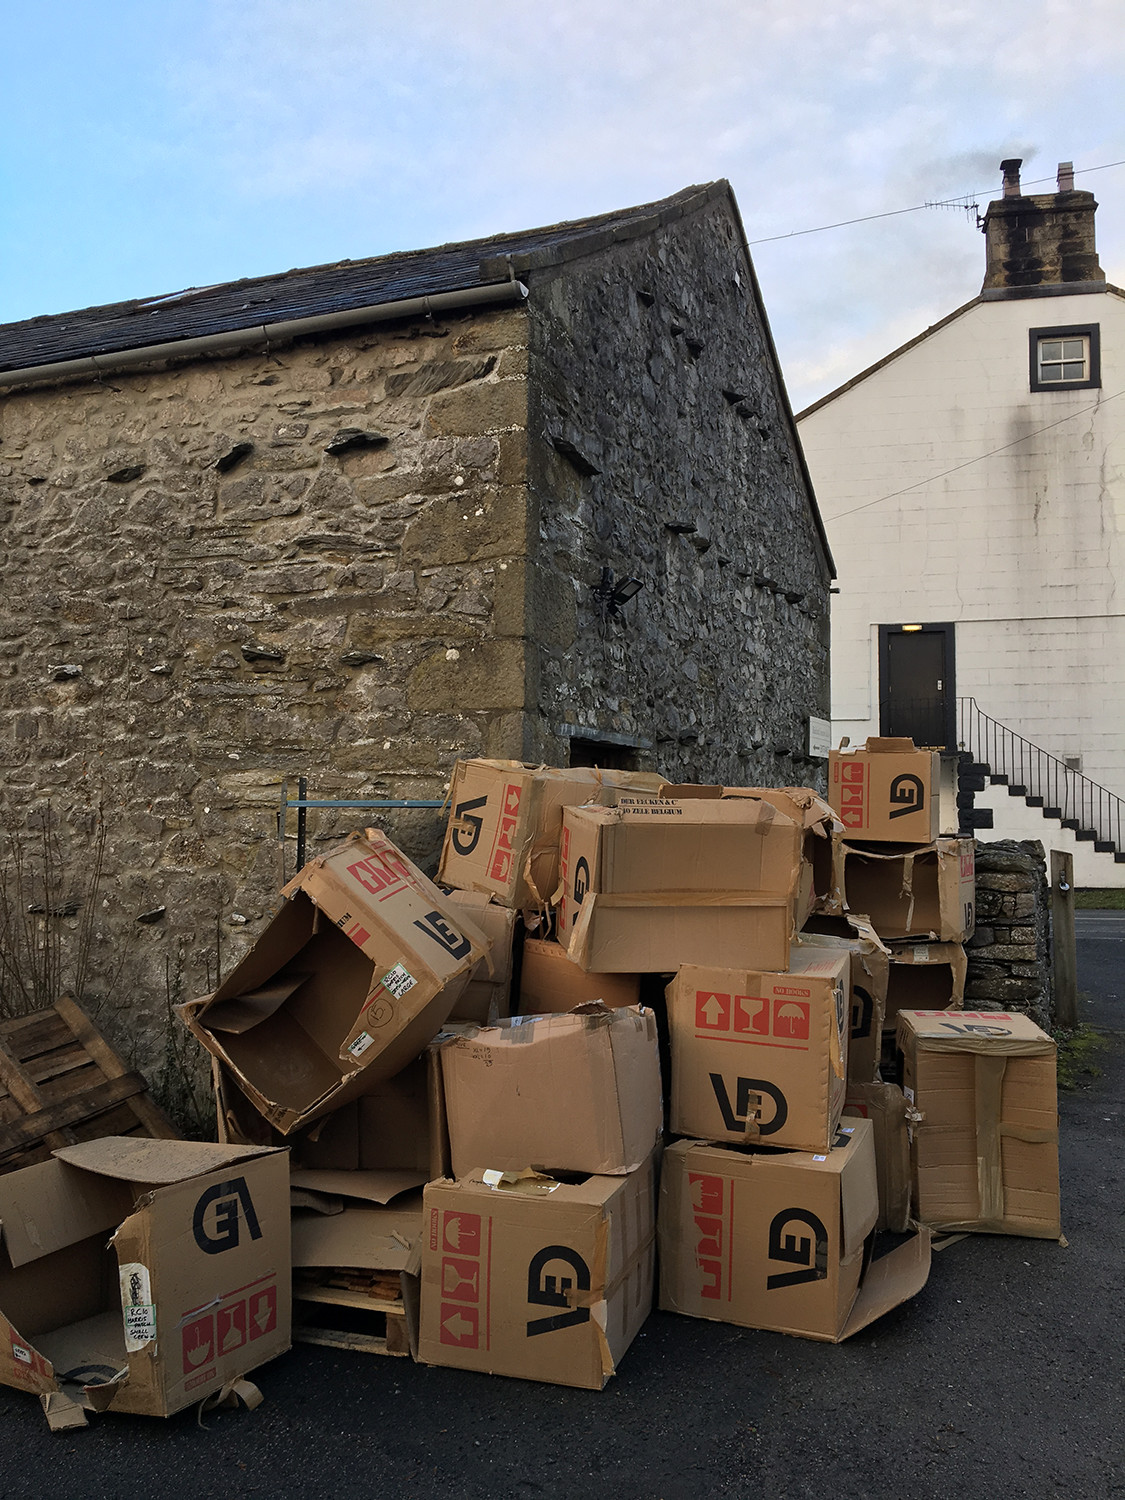 Cardboard boxes piled up outside warehouse